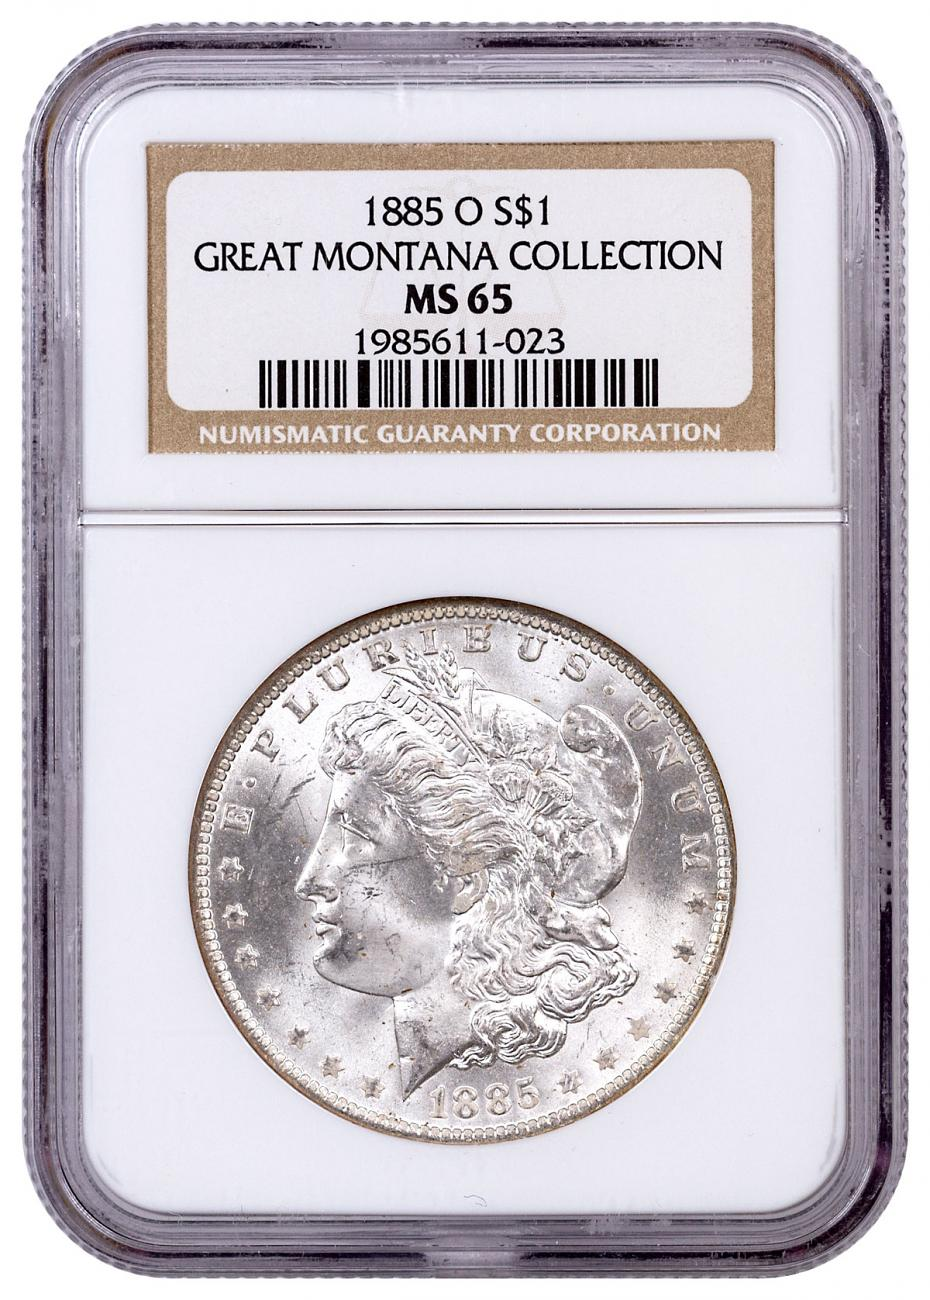 1885-O Morgan Silver Dollar From the Great Montana Collection NGC MS65 Toned CPCR 023